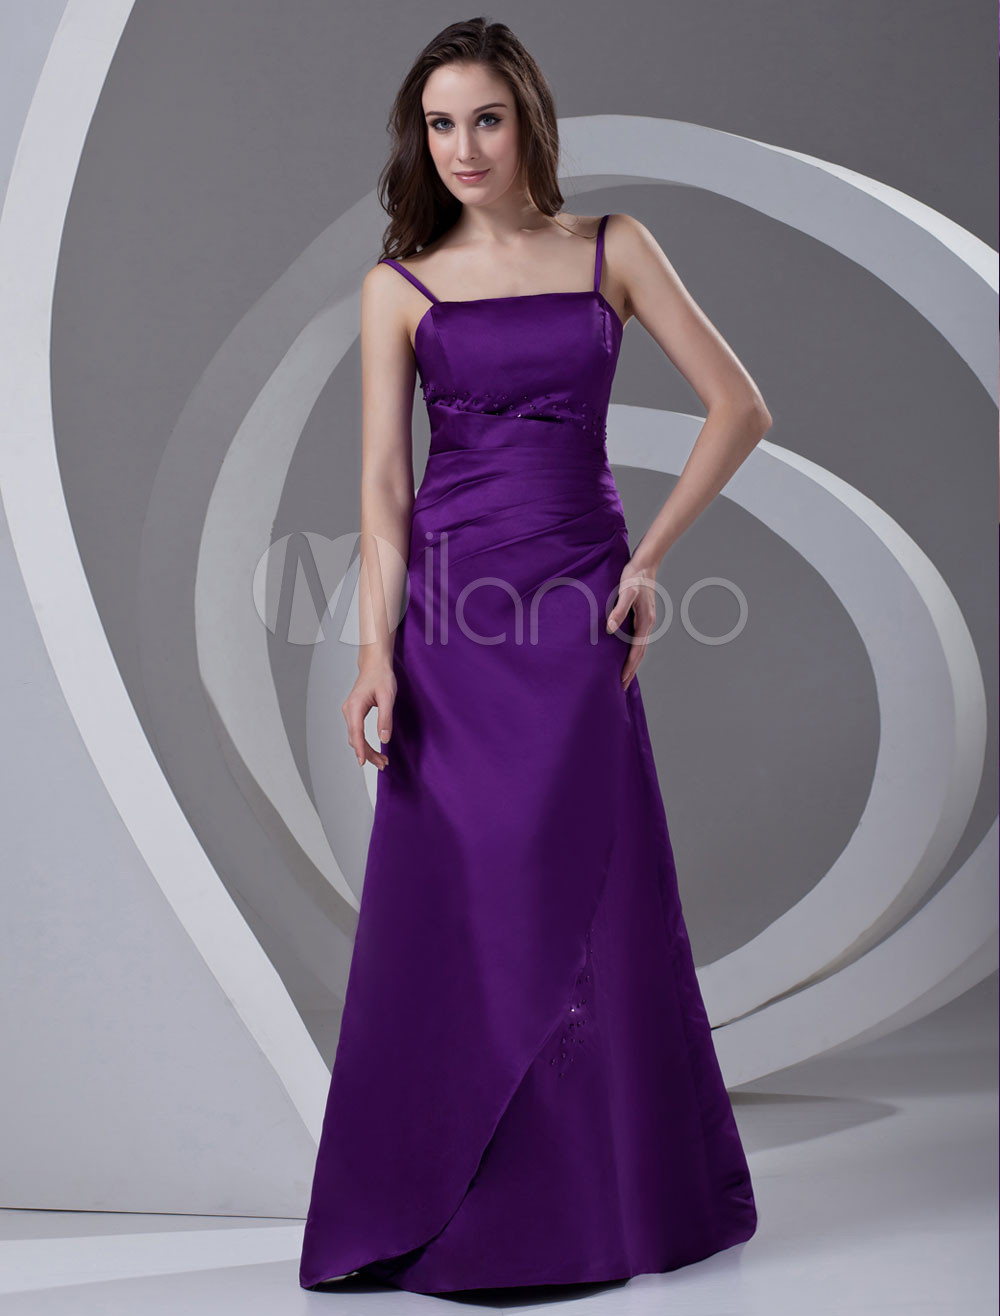 A-line Grape Satin Beading Floor-Length Bridesmaid Dress For Wedding